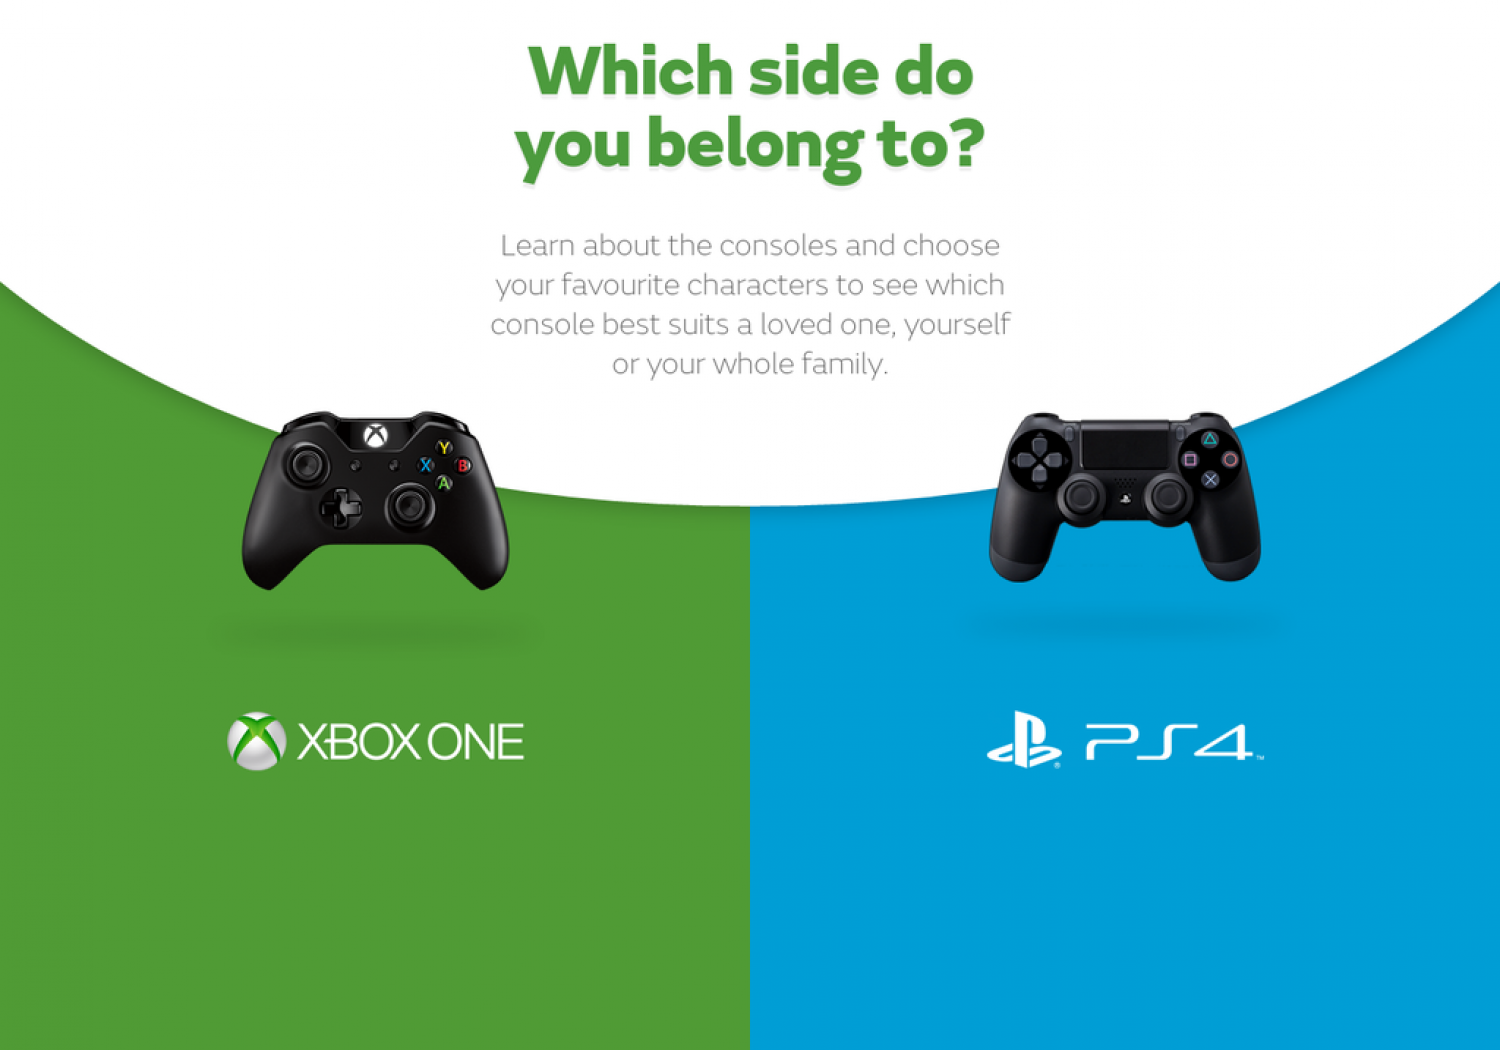 Xbox One vs PlayStation 4 - Choose Your Side Infographic